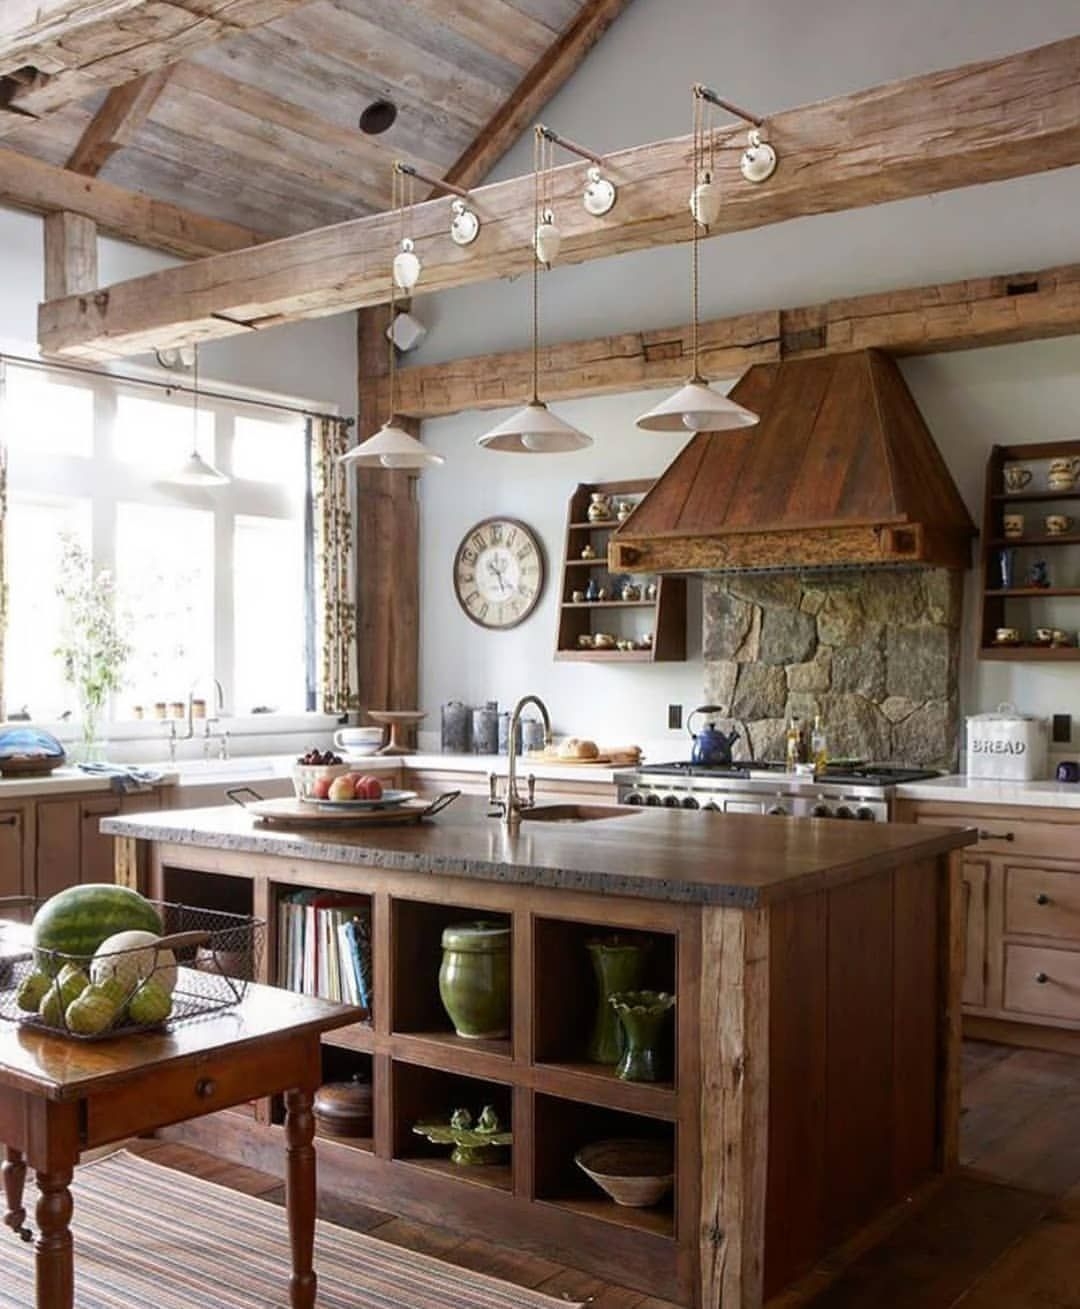 49 Amazing Rustic Cottage Decorating Ideas (With images ... on Rustic:yucvisfte_S= Farmhouse Kitchen Ideas  id=53385